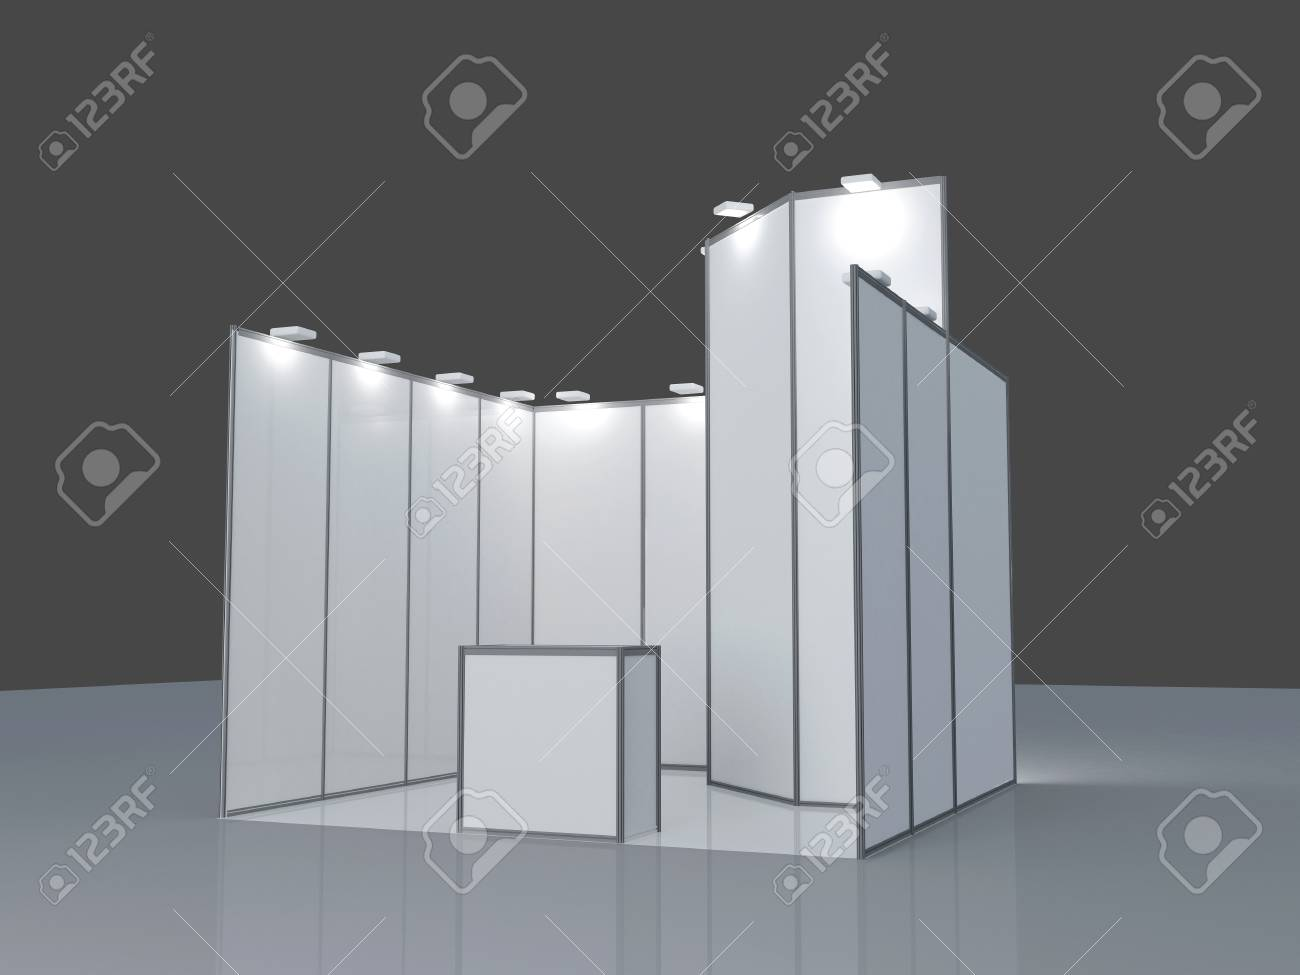 Exhibition Stand 3d Model Free : Blank exhibition stand d render isolated on white background